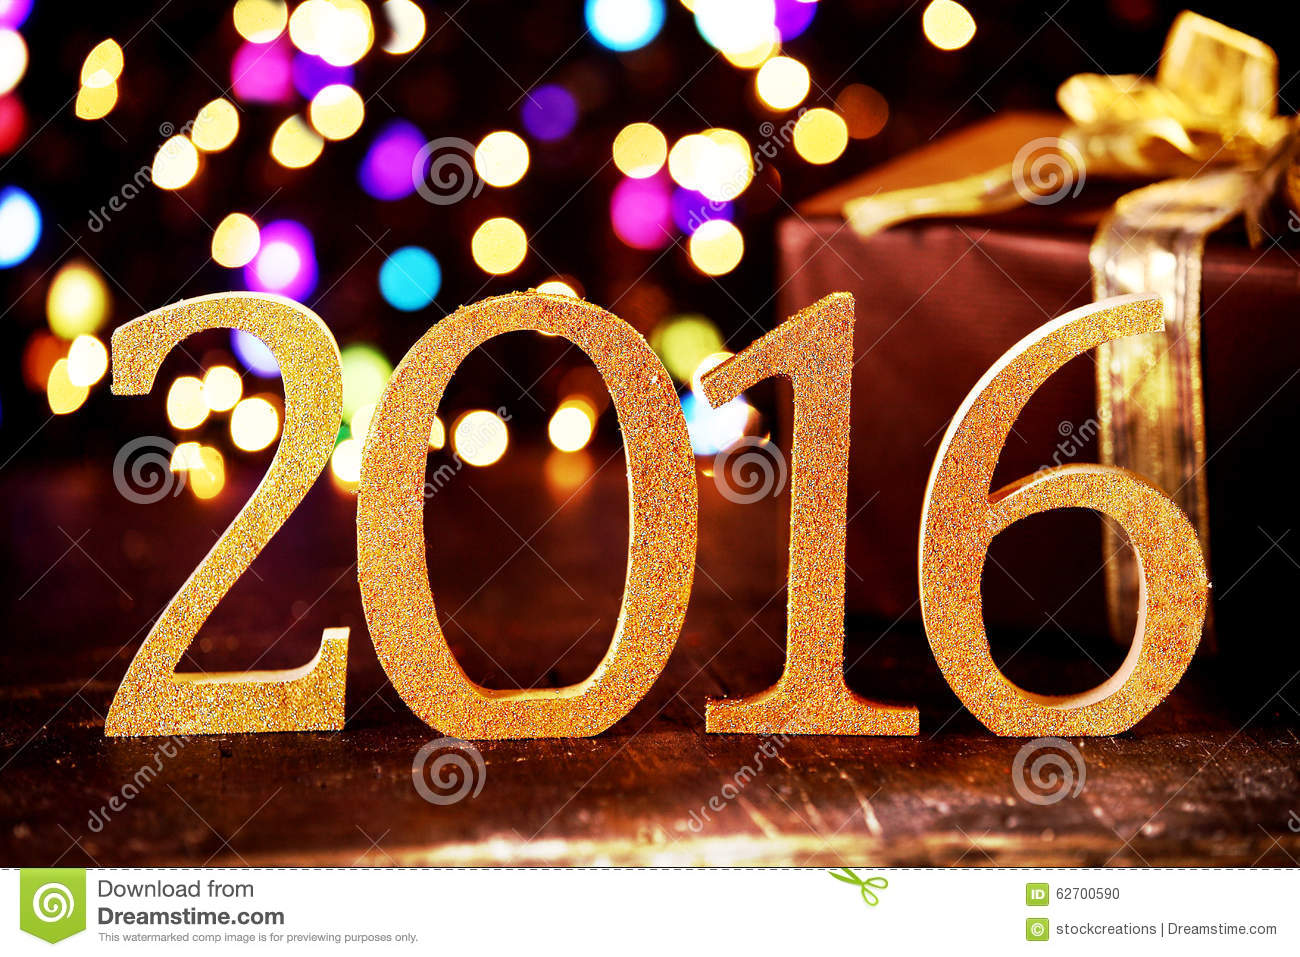 Colorful 2016 New Year party background